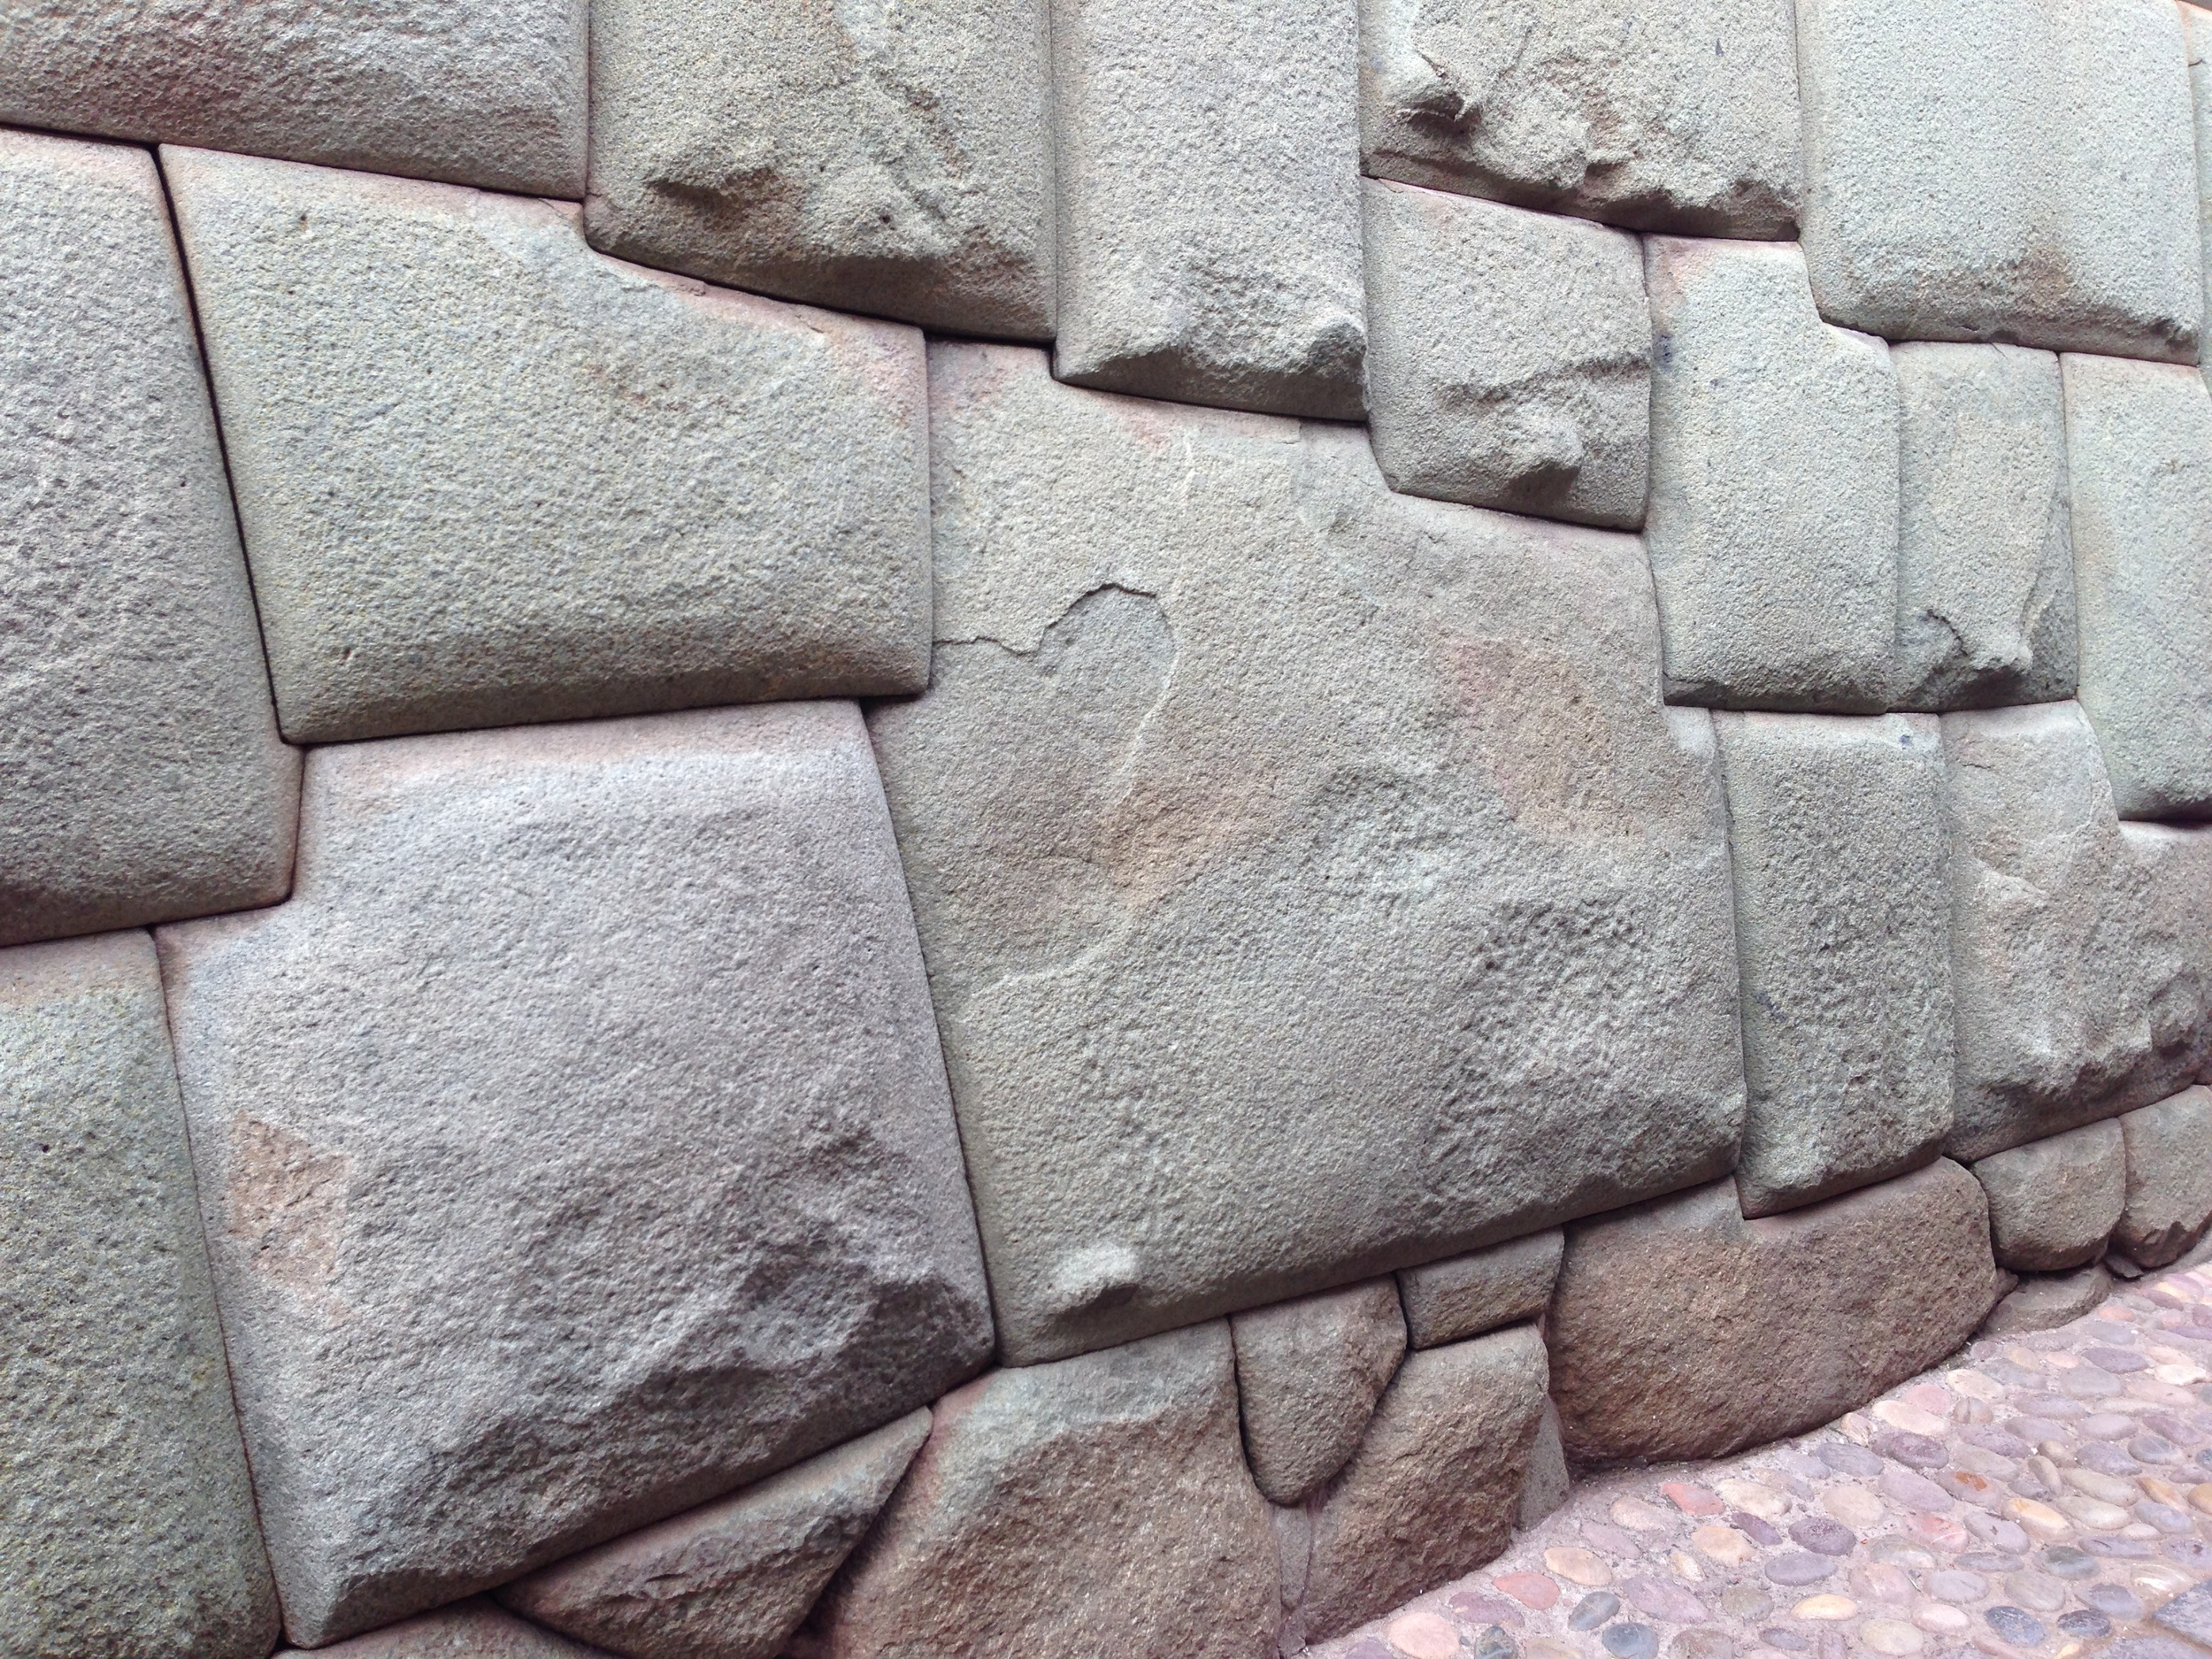 The famous 12-sided stone in an Incan wall in Cusco, Peru